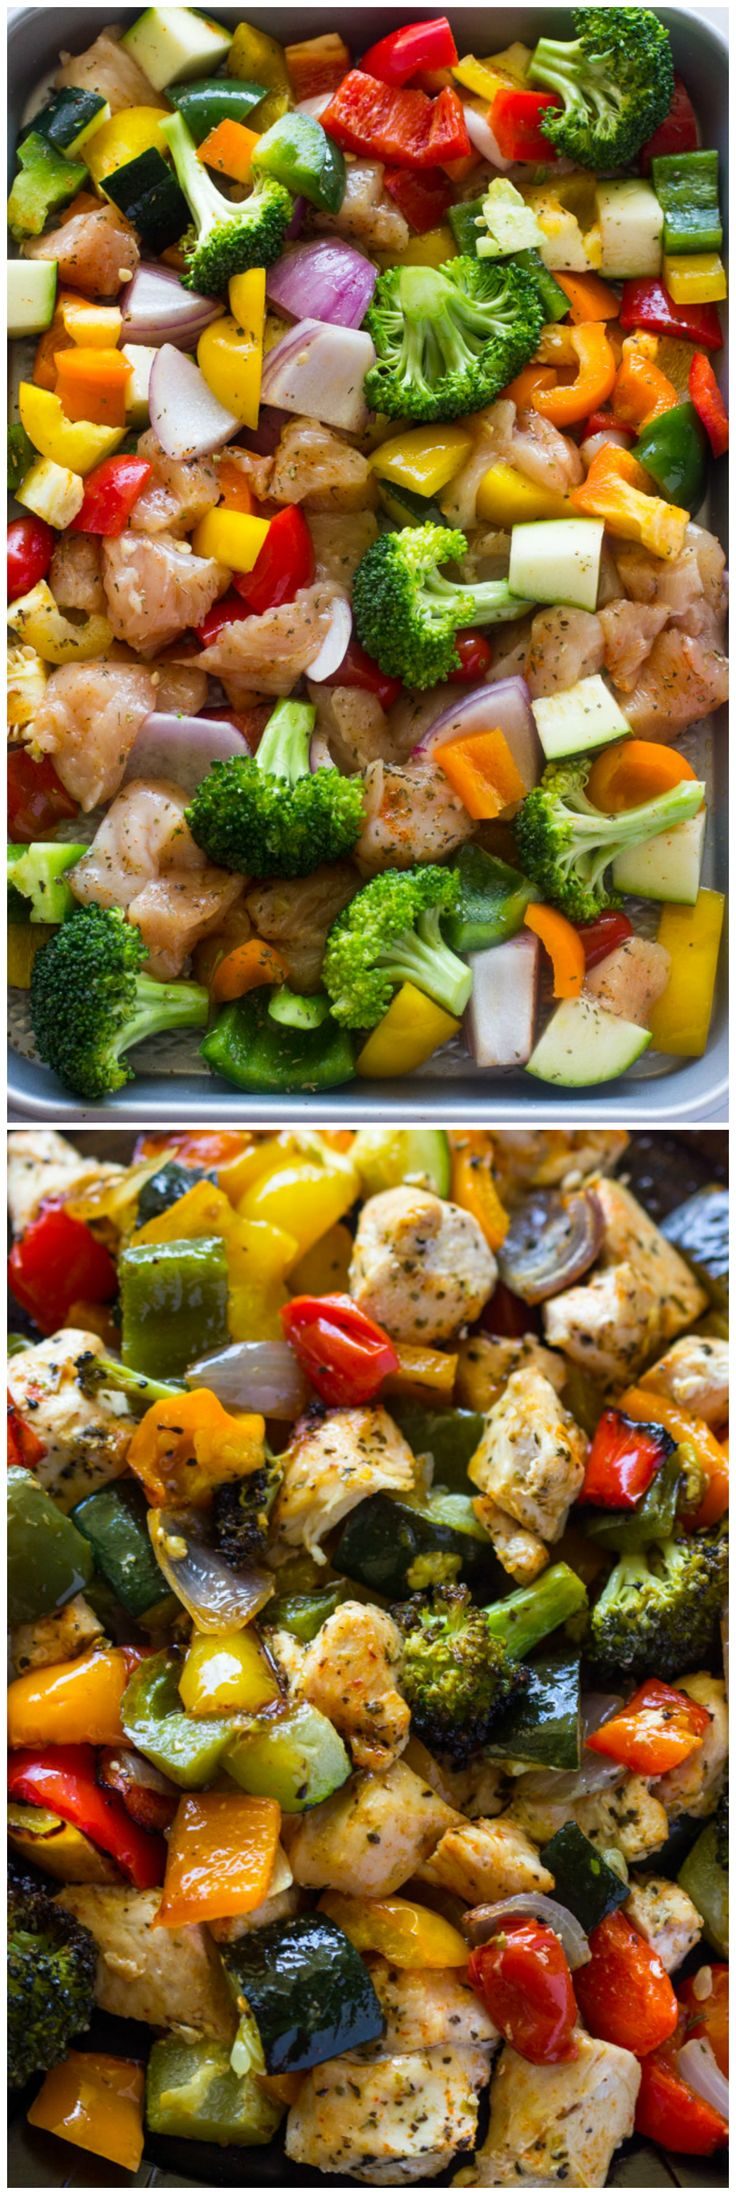 15 Minute Healthy Roasted Chicken and Veggies (Video) | Gimme Delicious--substitute chicken with tofu???